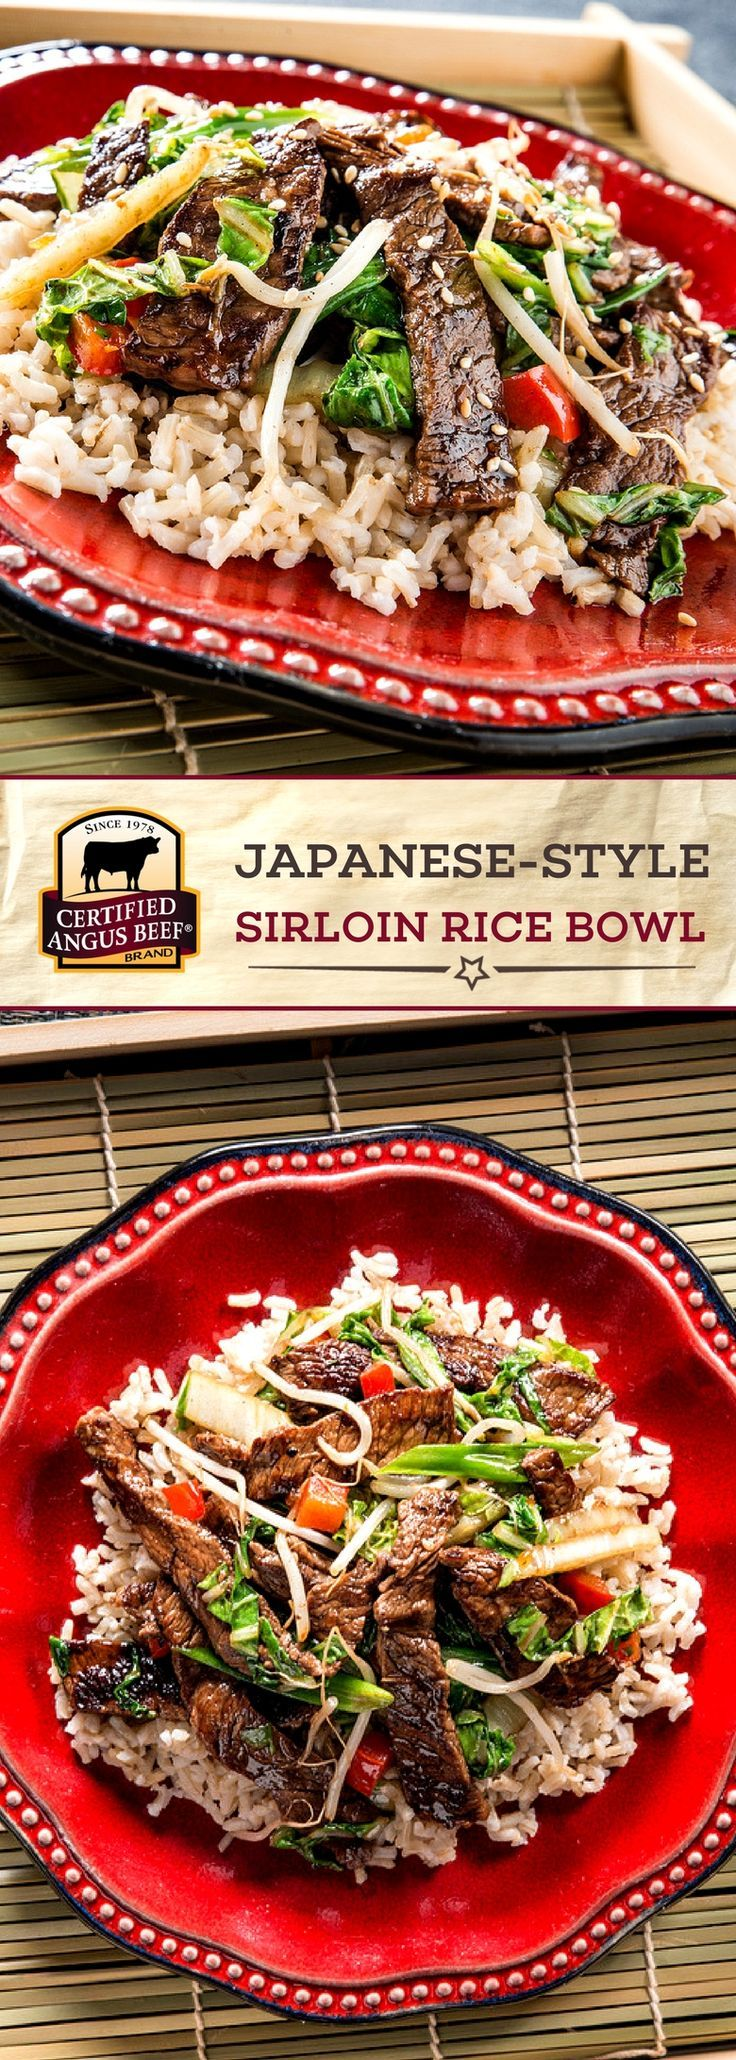 Certified Angus Beef®️️️️️️️ brand Japanese-style sirloin rice bowl is an EASY recipe packed with DELICIOUS flavors! The best sirloin steak is cooked with cabbage, peppers and sprouts, and then is finished with a soy sauce, sugar, sake and sesame oil sauce for a deeply FLAVORFUL dish! Serve over your favorite rice for a SIMPLE, tasty meal. #bestangusbeef #certifiedangusbeef #beefrecipe #easyrecipes #ricebowl